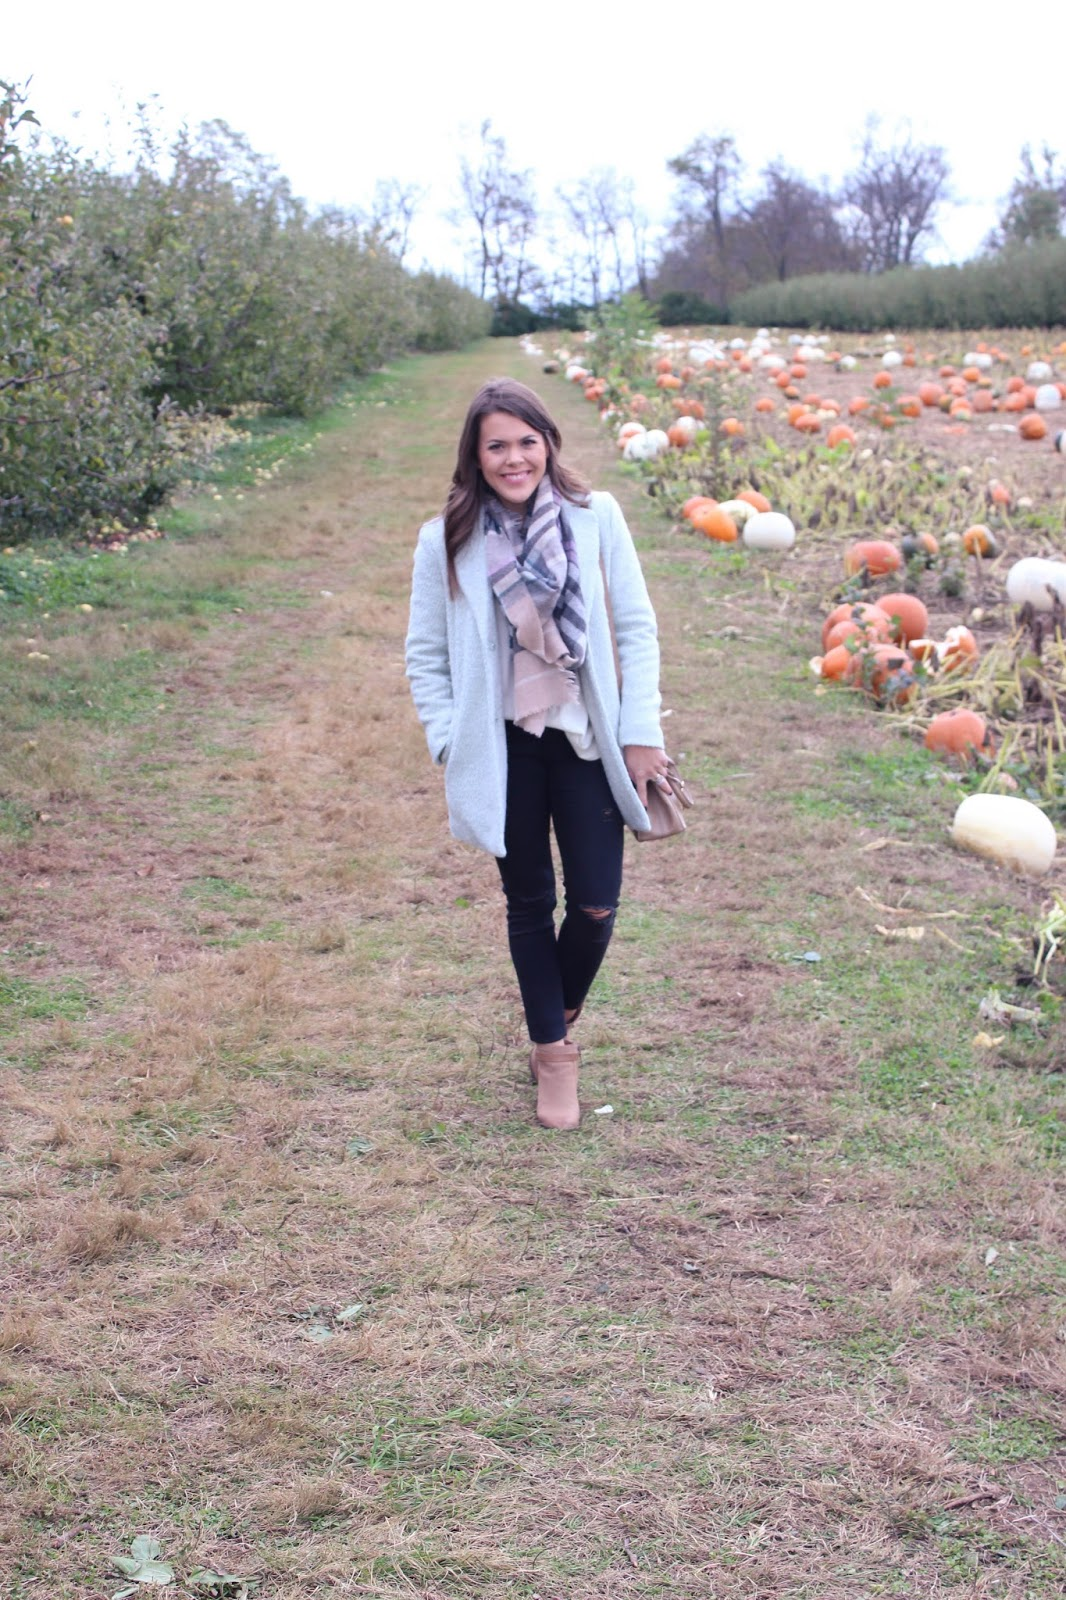 J. Crew Sweater + Forever21 Coat + Old Navy Jeans = Fall fashion at the pumpkin patch